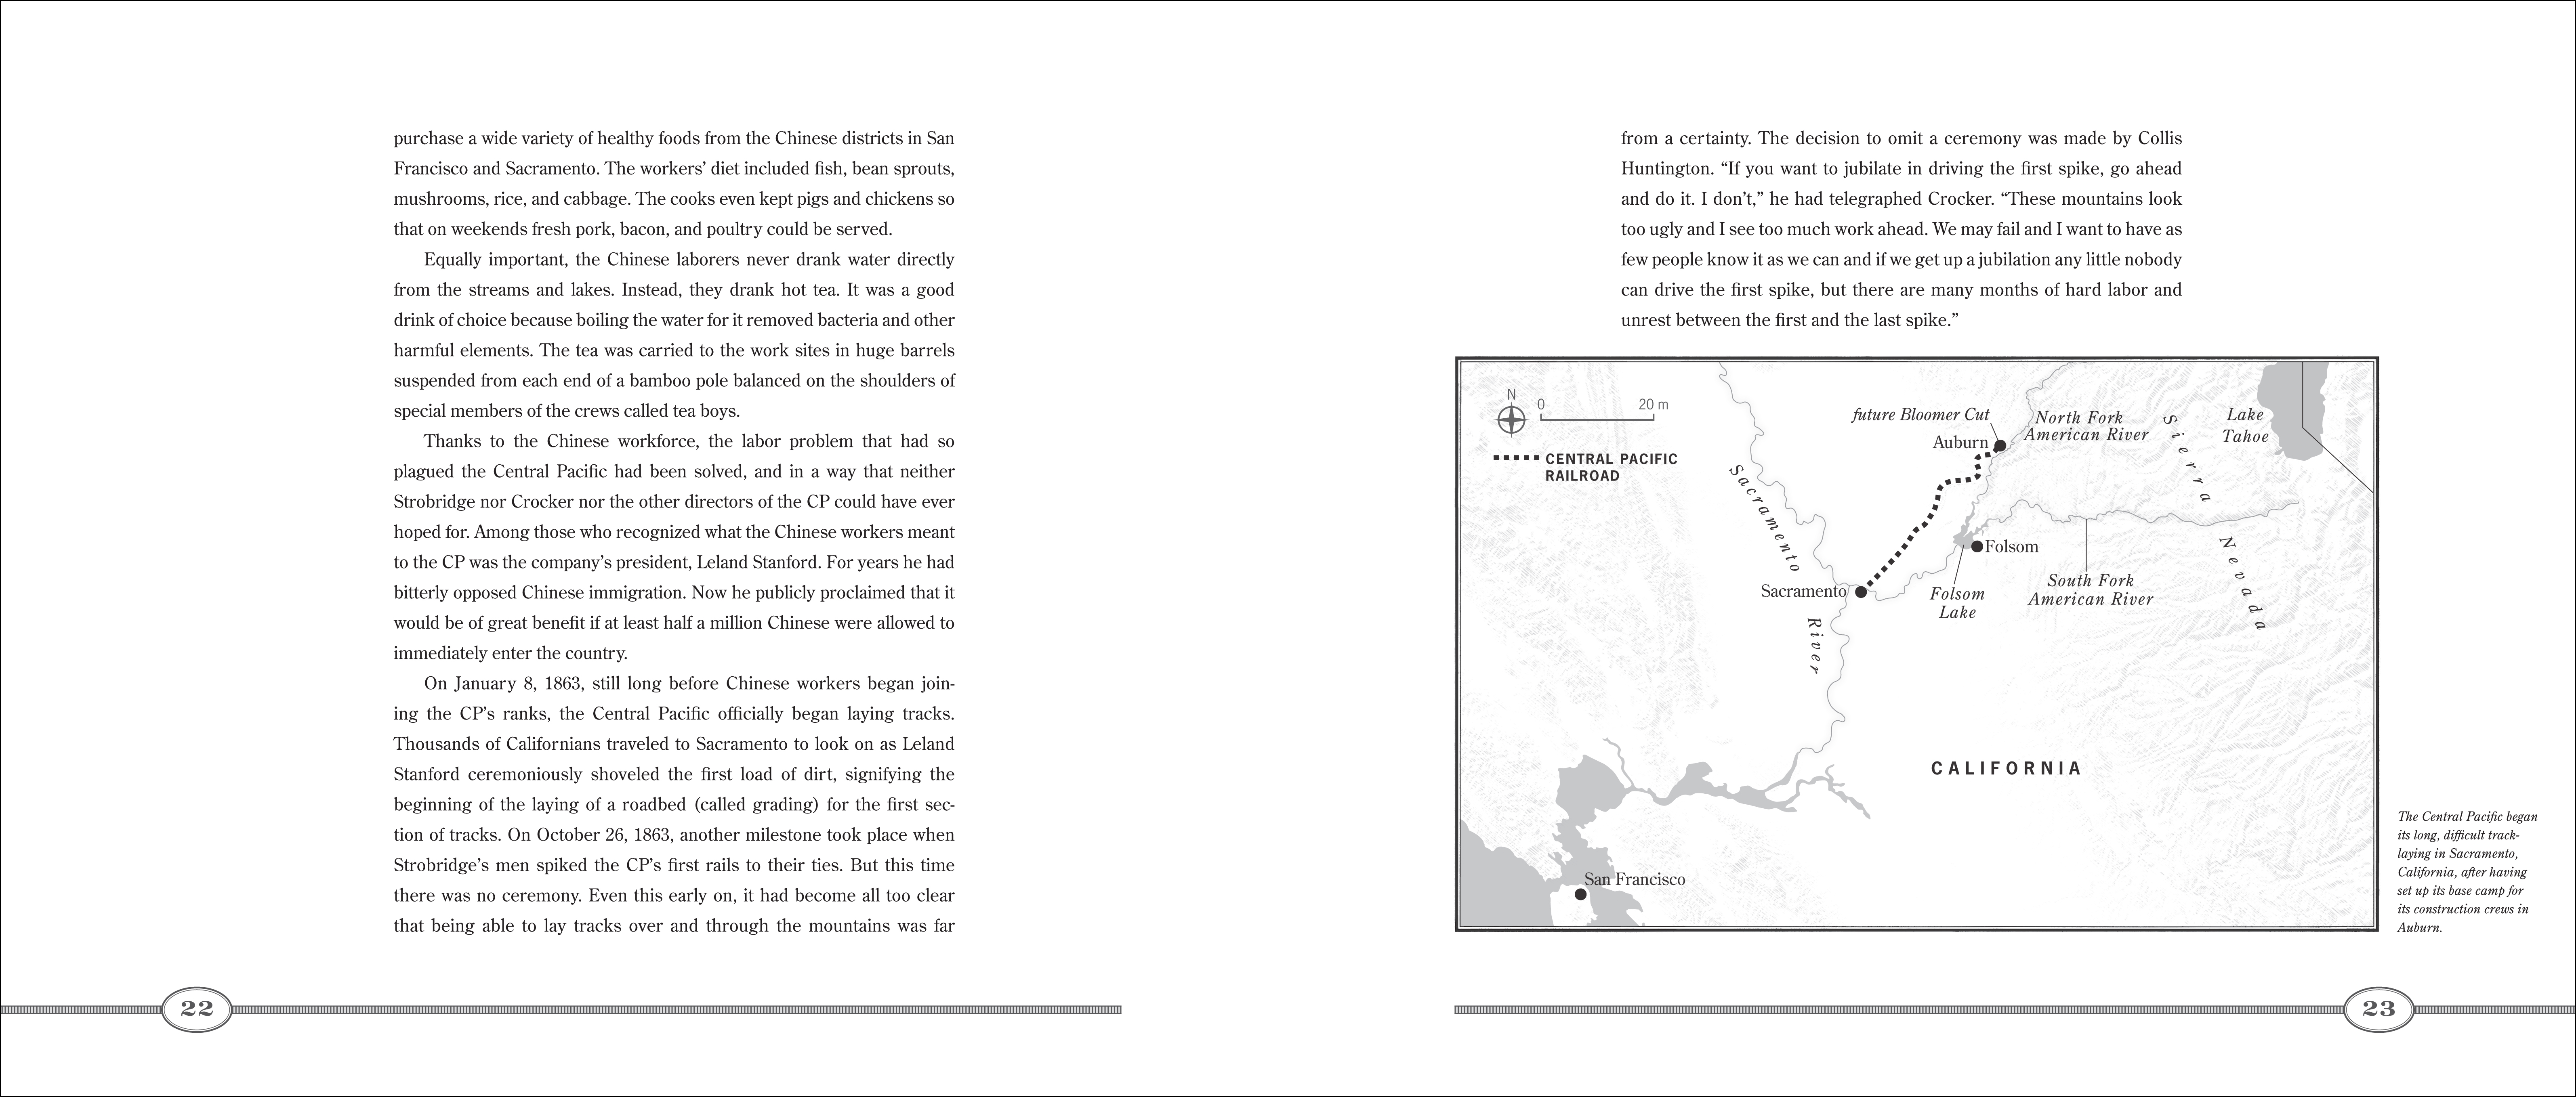 Text spread for IRON RAILS, IRON MEN, AND THE RACE TO LINK THE NATION